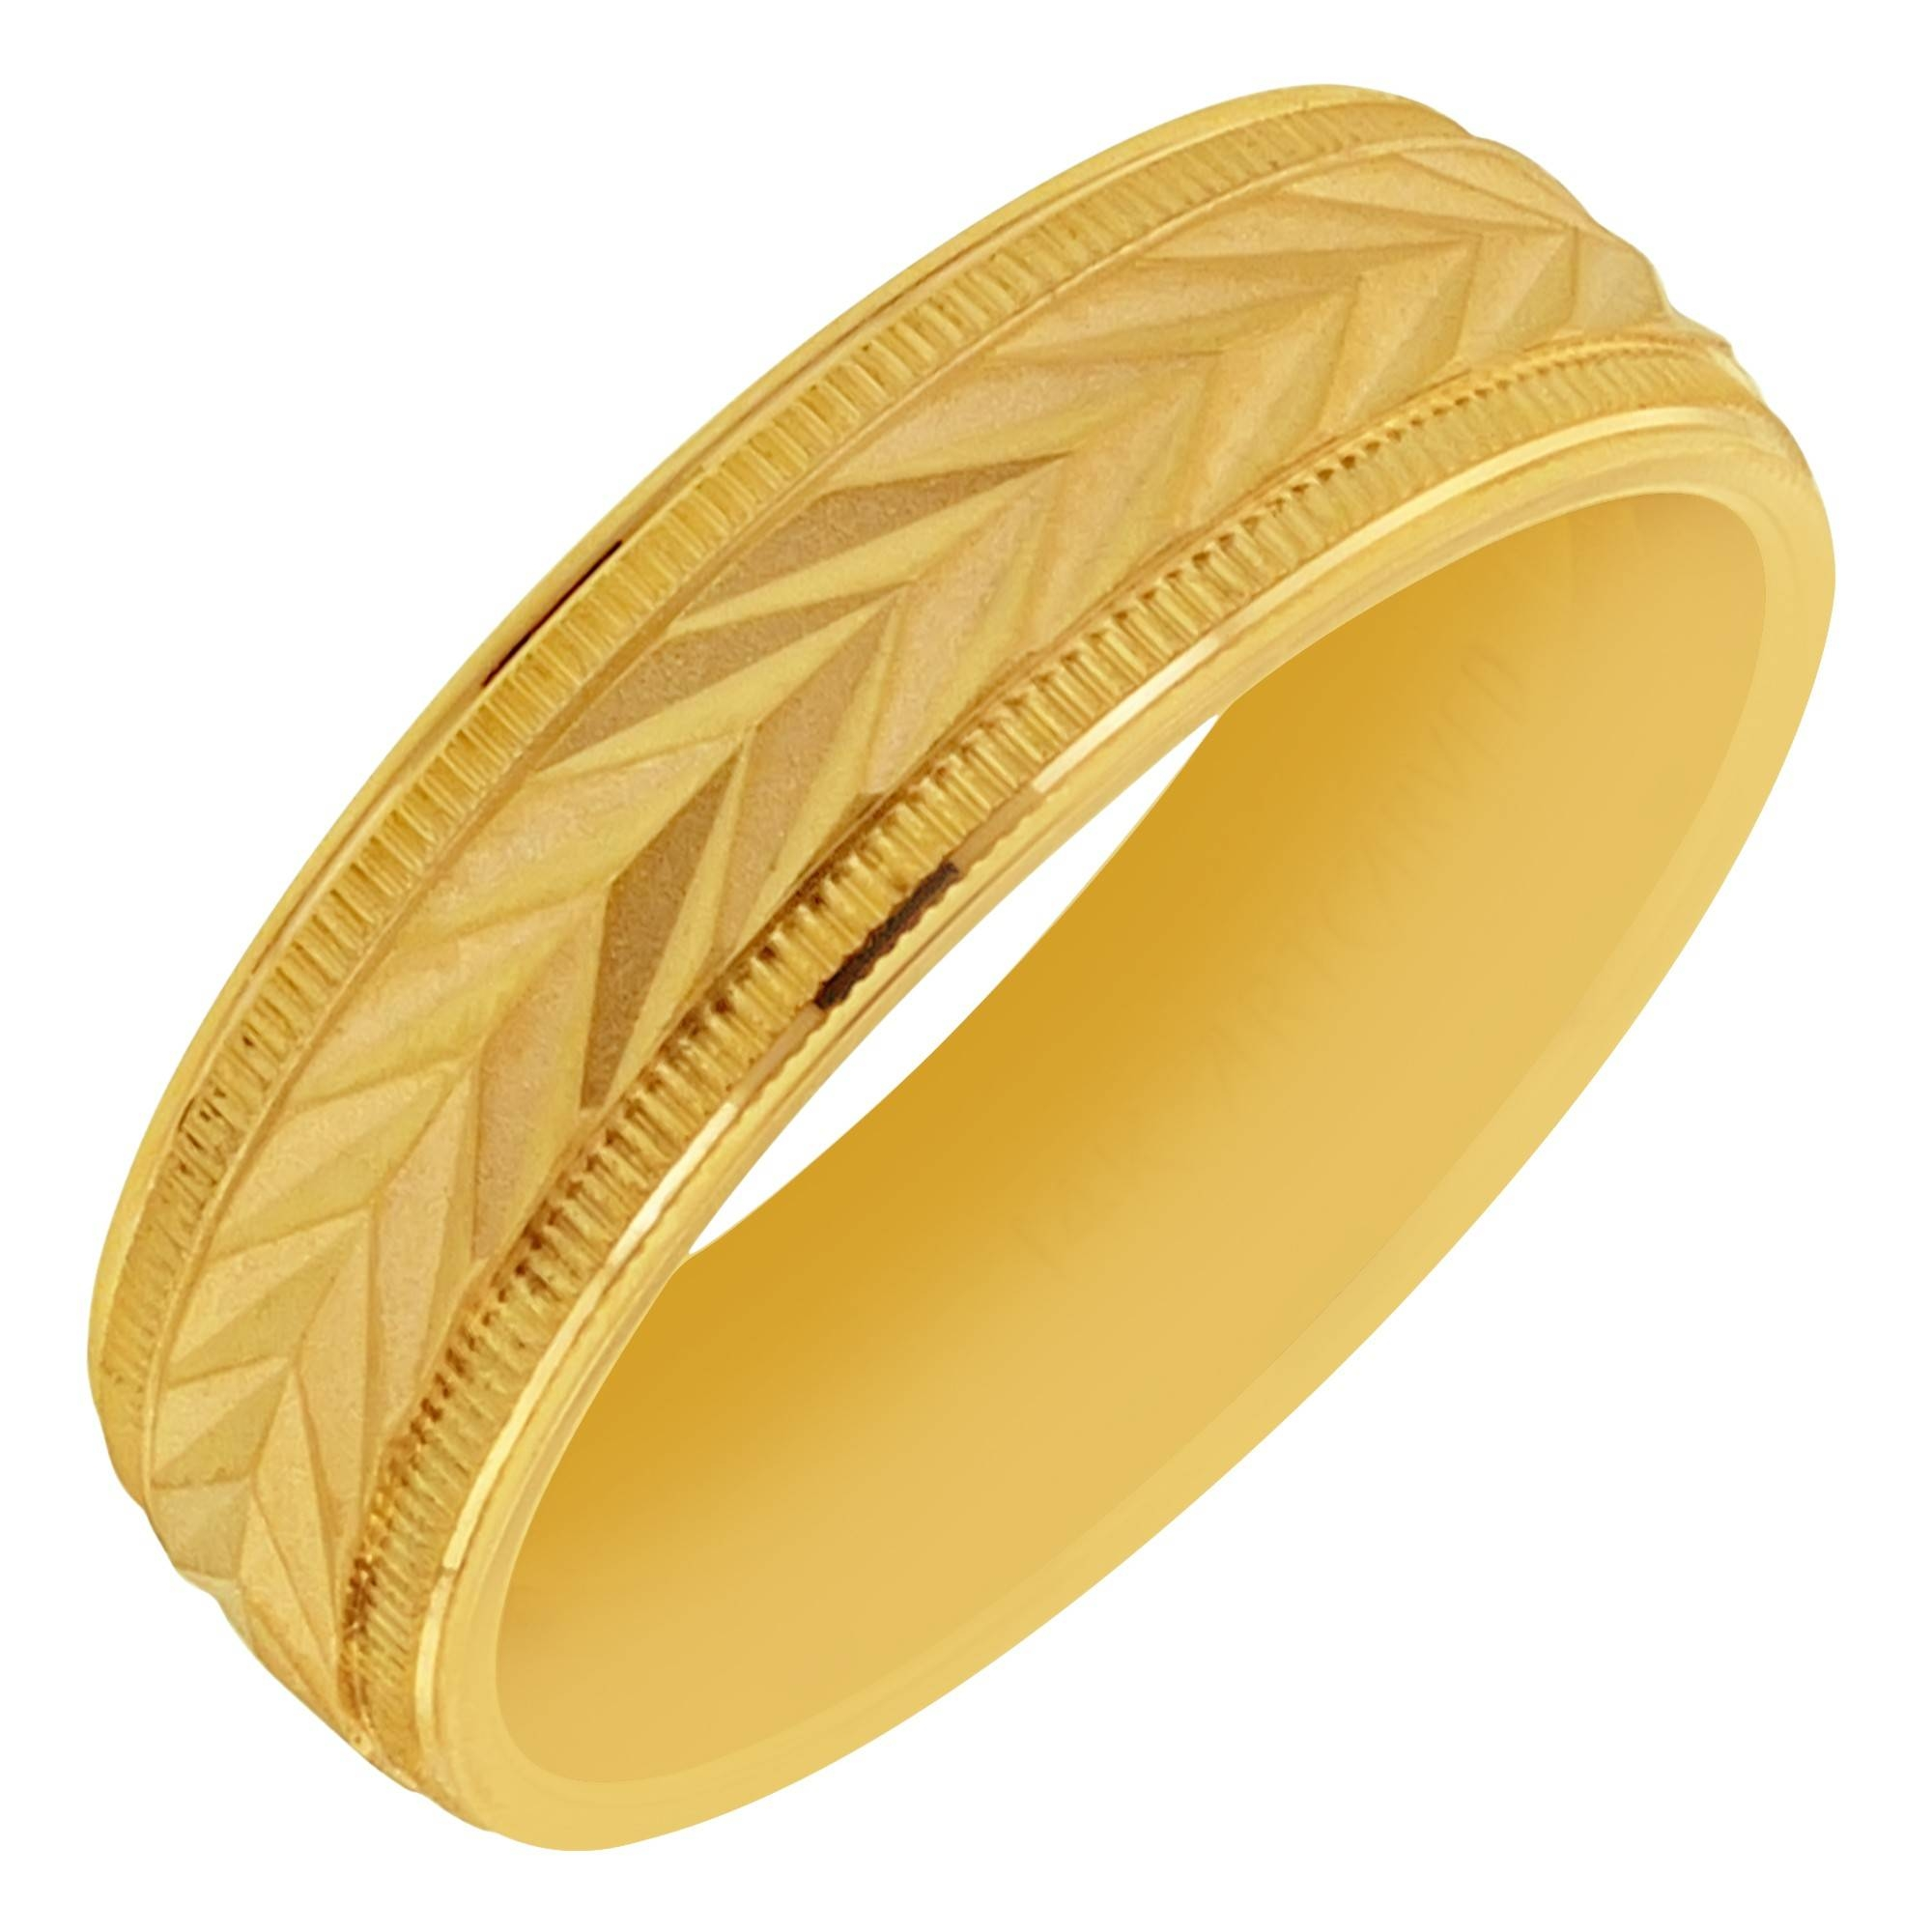 Artcarved Mens Wedding Band In 14Kt Yellow Gold (6.5Mm) Within Artcarved Men Wedding Bands (Gallery 2 of 15)